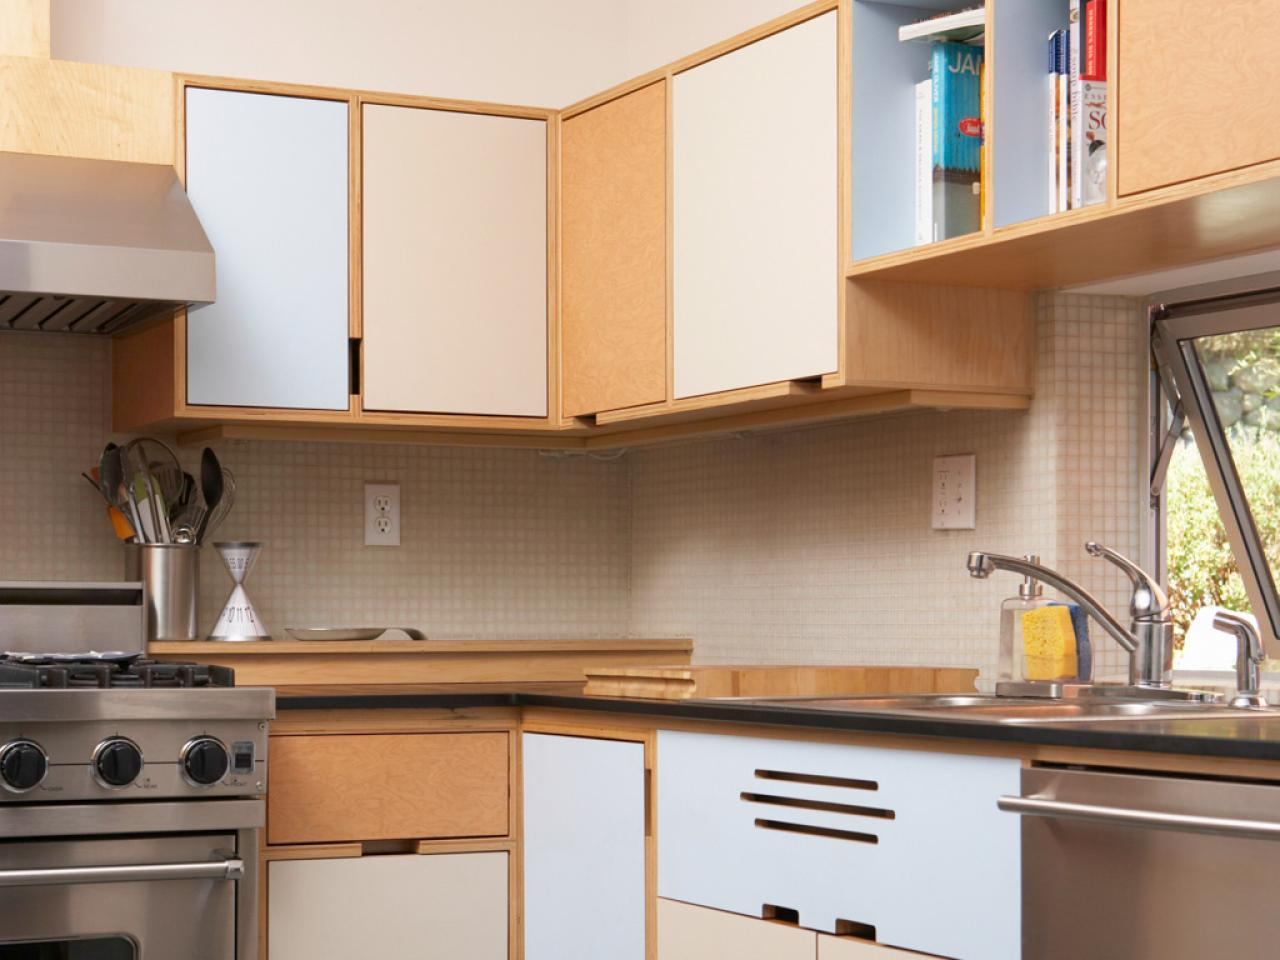 Compact unfinished kitchen cabinets ttmlhxk